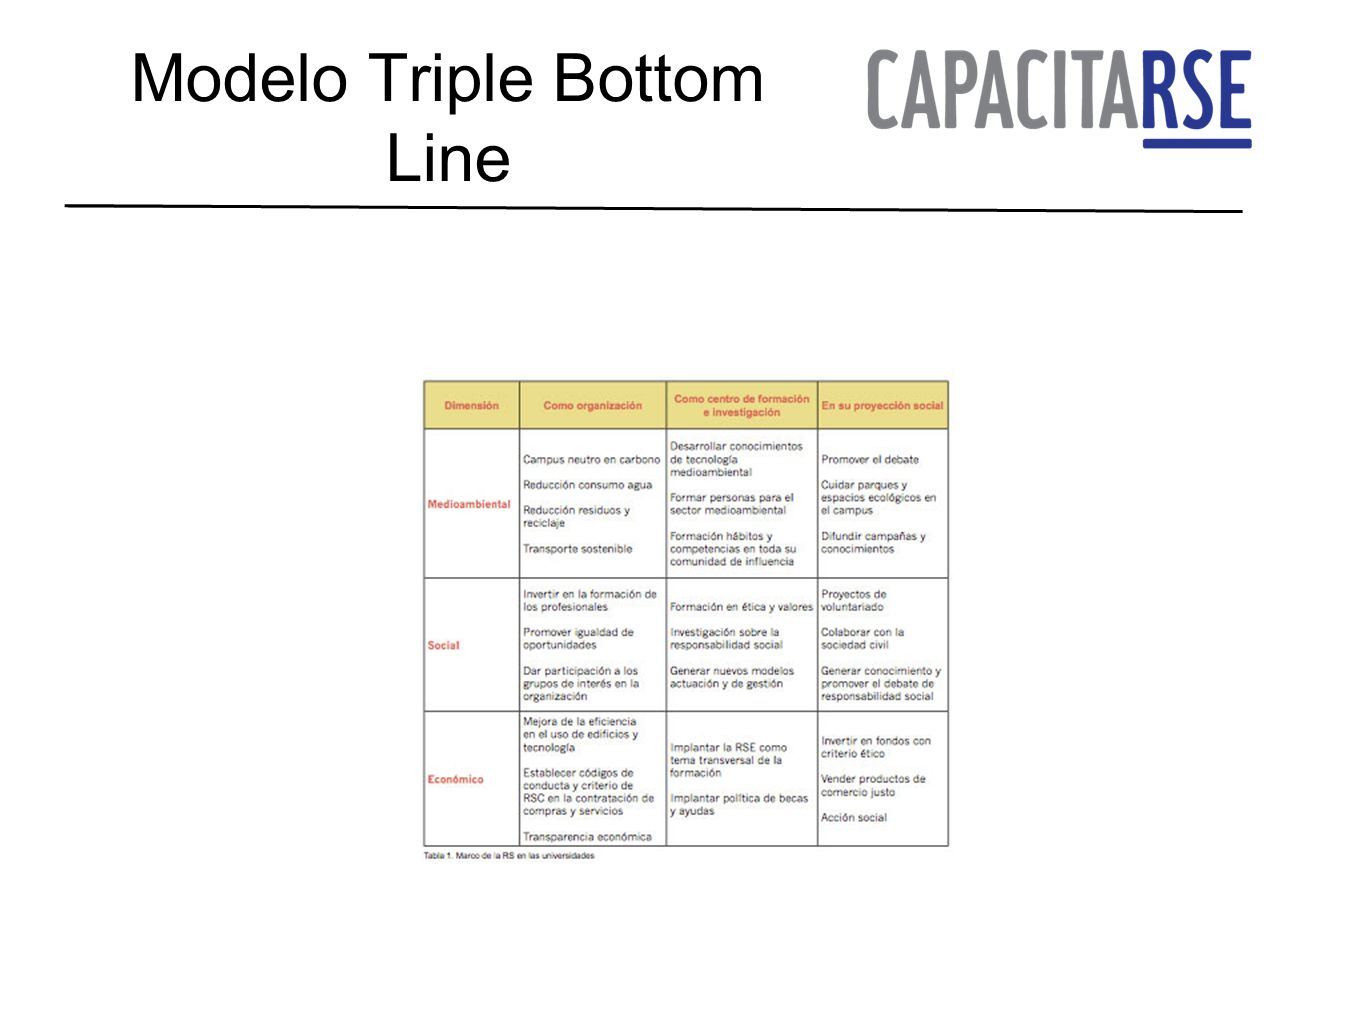 Modelo Triple Bottom Line